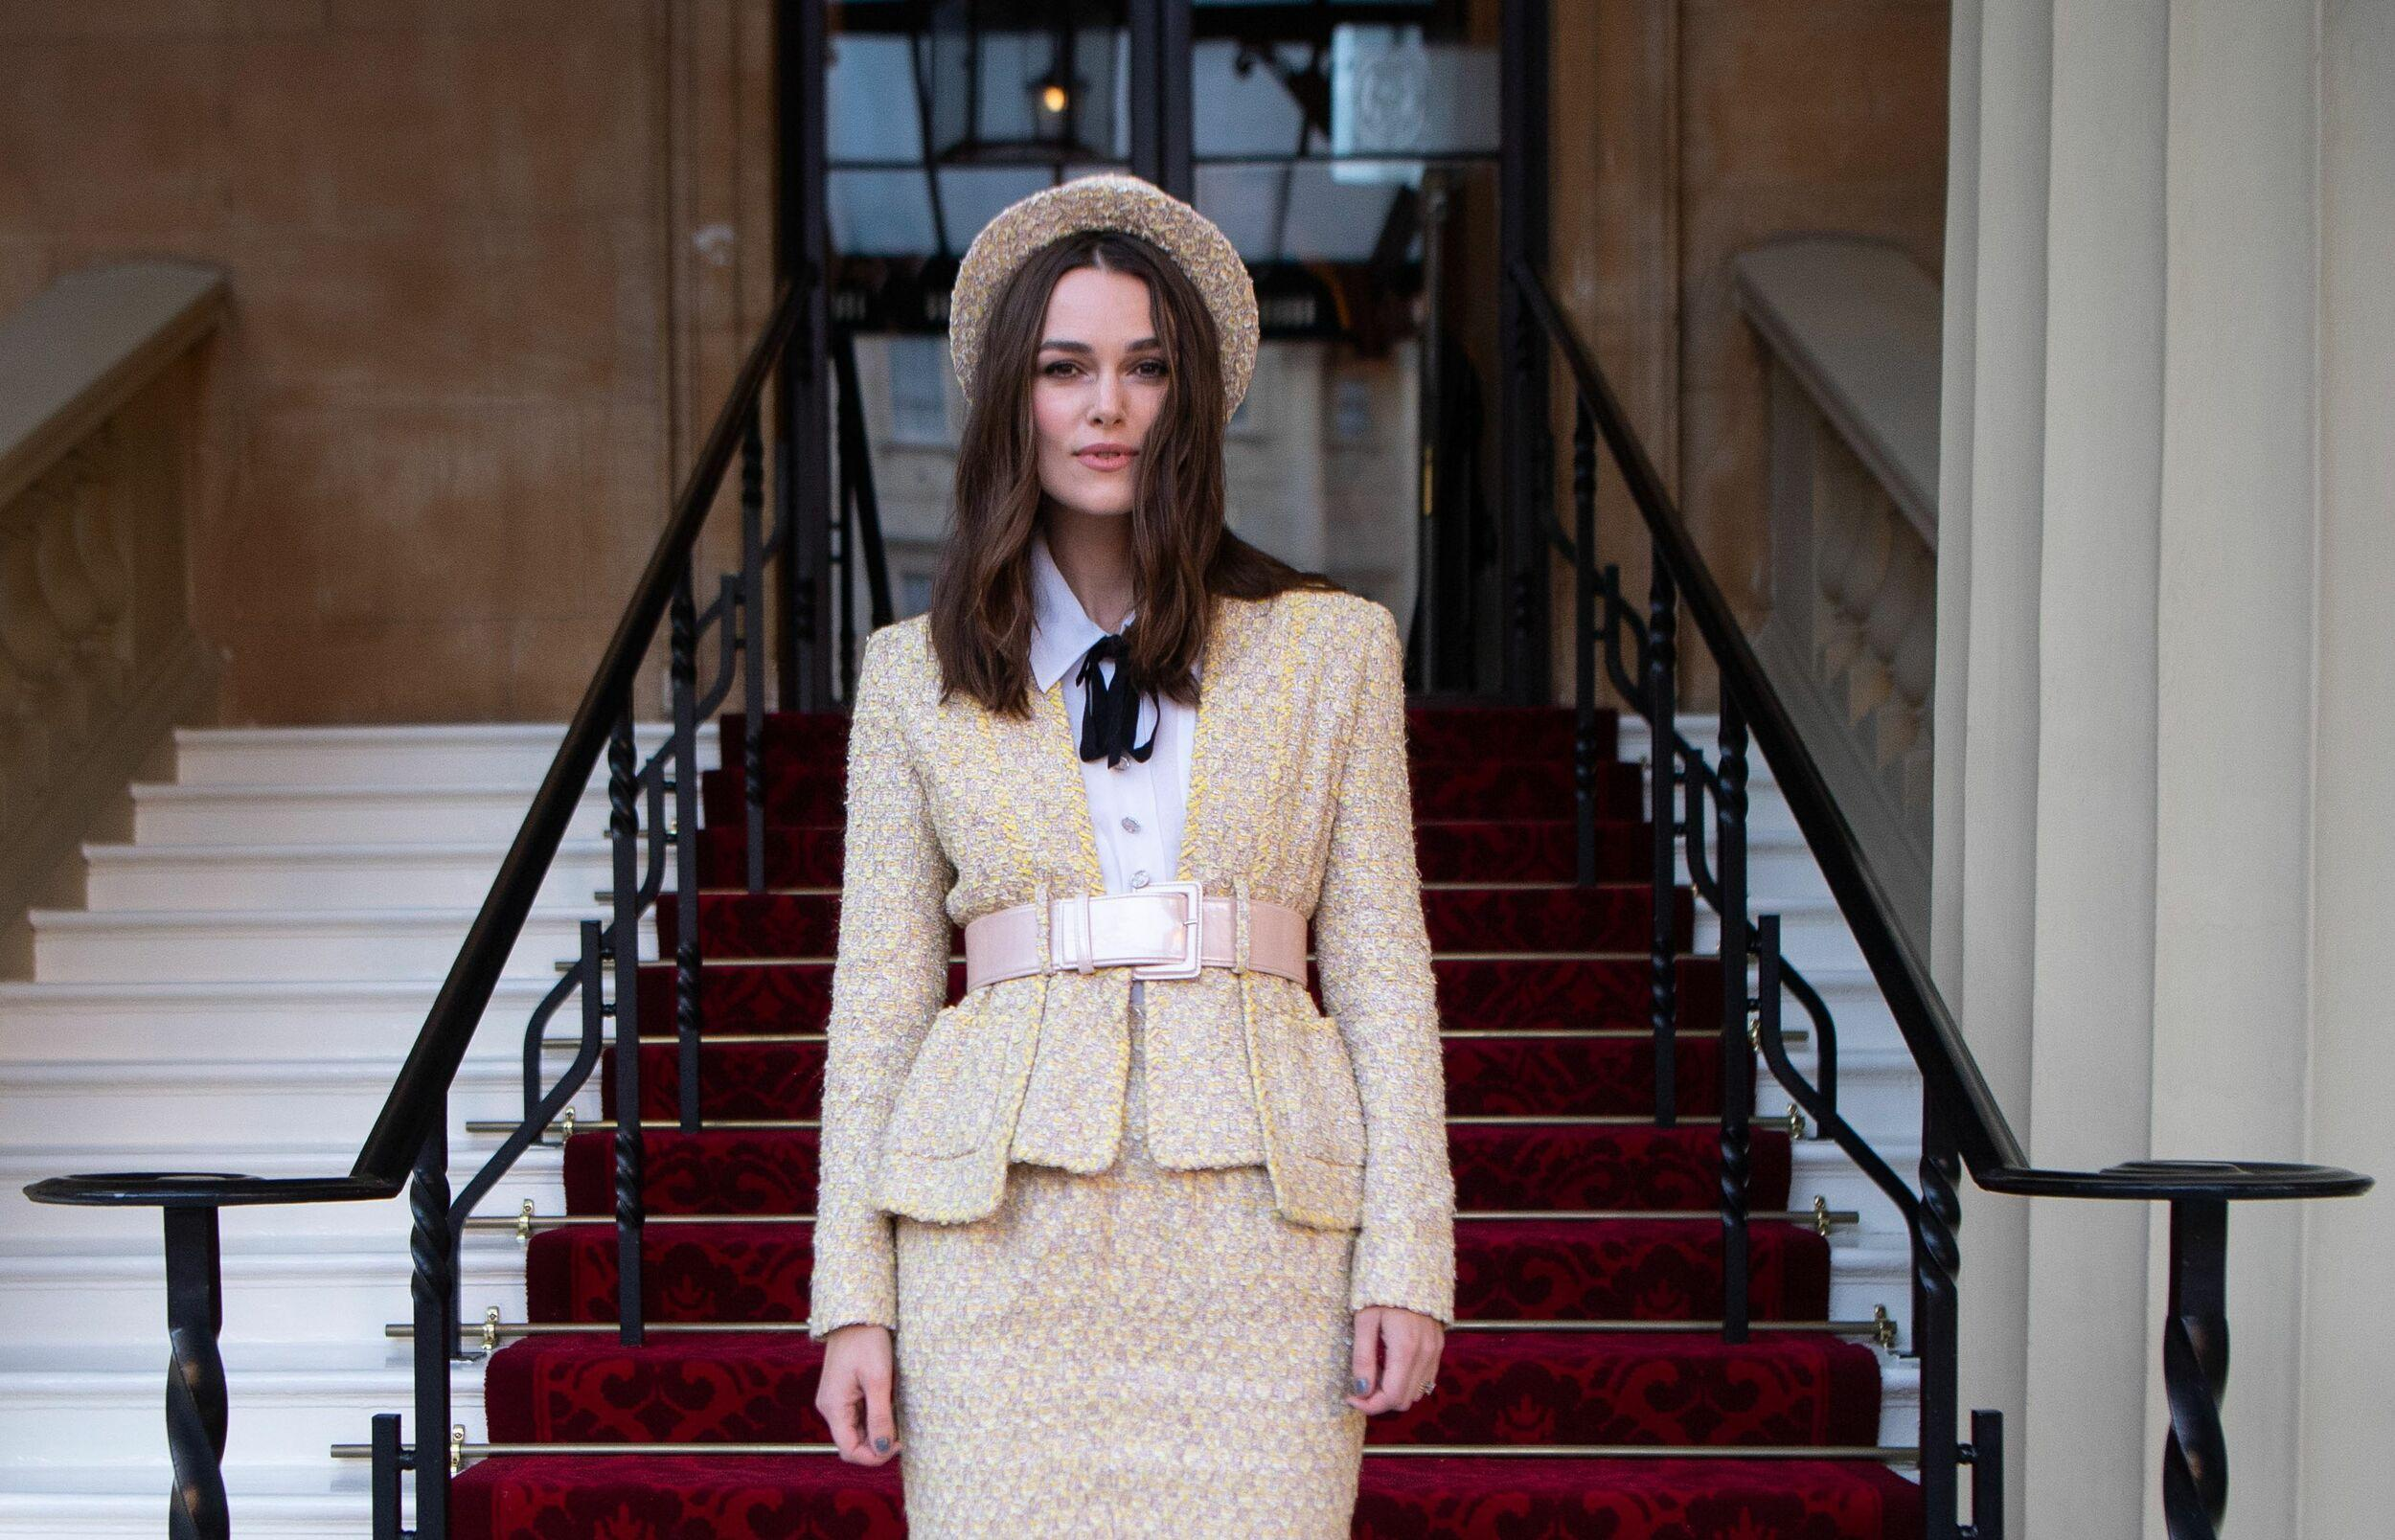 British actress Keira Knightley poses as she arrives at Buckingham Palace in London on December 13, 2018 to be appointed an Officer of the Order of the British Empire (OBE) for her services to drama and charity at an investiture ceremony. (Photo by Victoria Jones / POOL / AFP)        (Photo credit should read VICTORIA JONES/AFP/Getty Images)